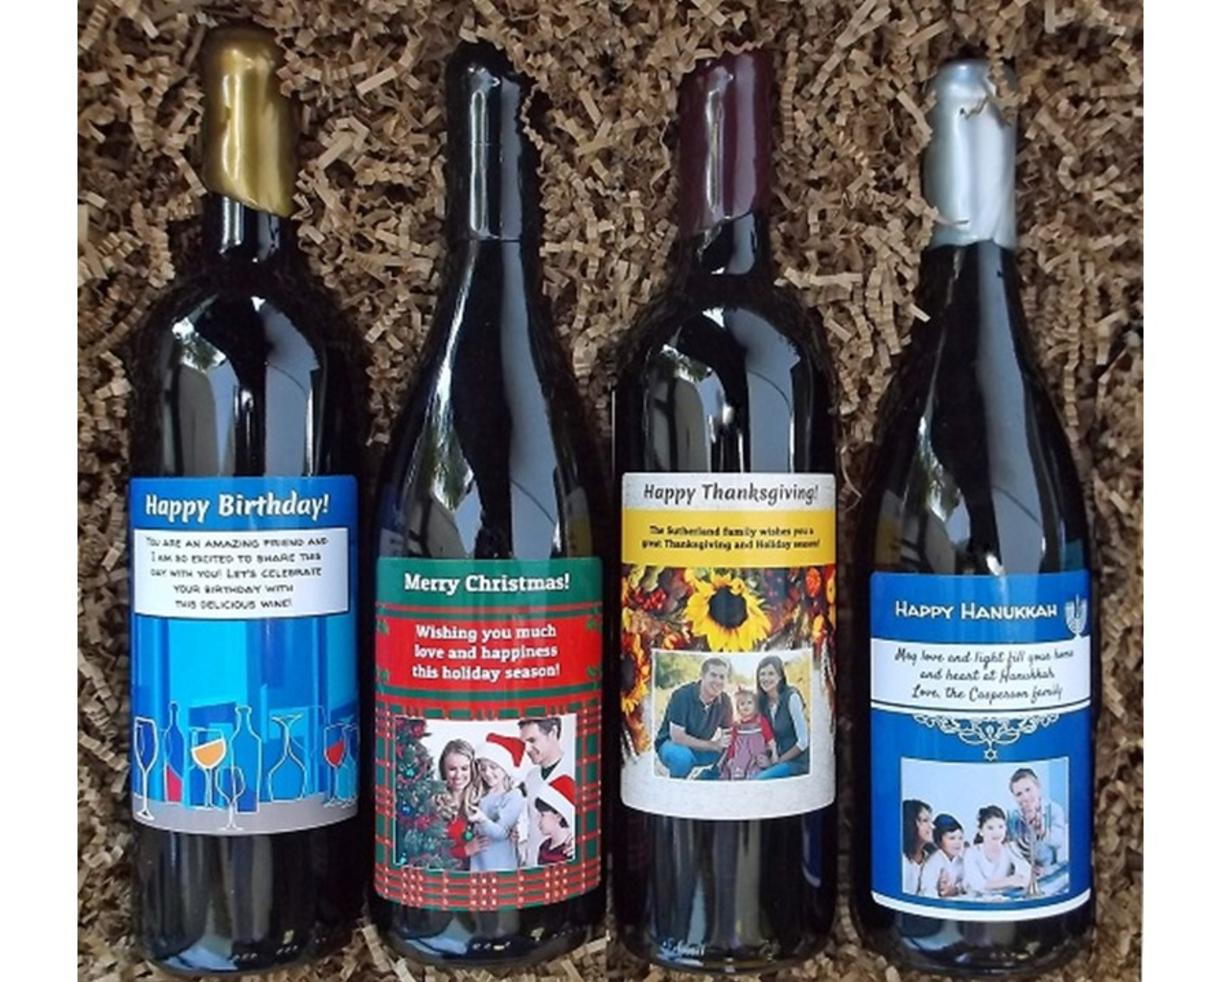 Deal 33 For Two Personalized Wine Bottles From Winegreeting